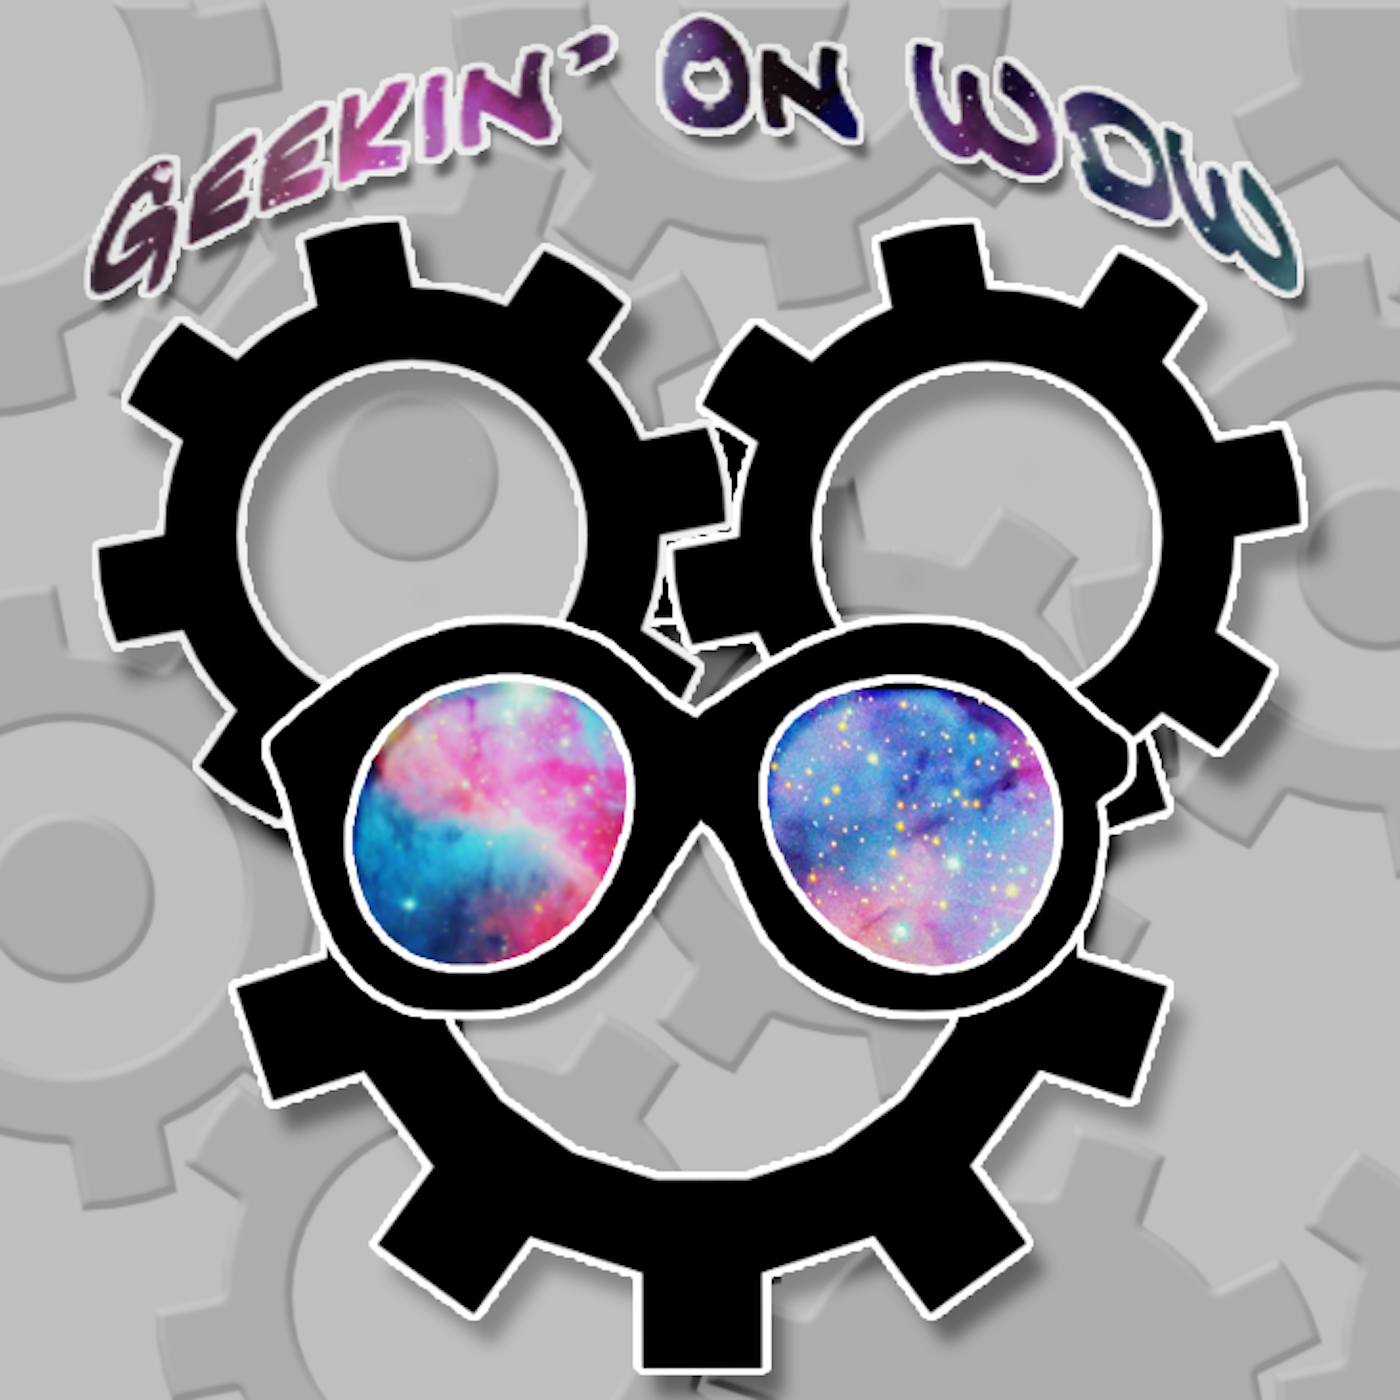 Geekin' On WDW Podcast   A Family Friendly Community of Walt Disney World Fans   Travel tips on resorts, food, touring and fun!